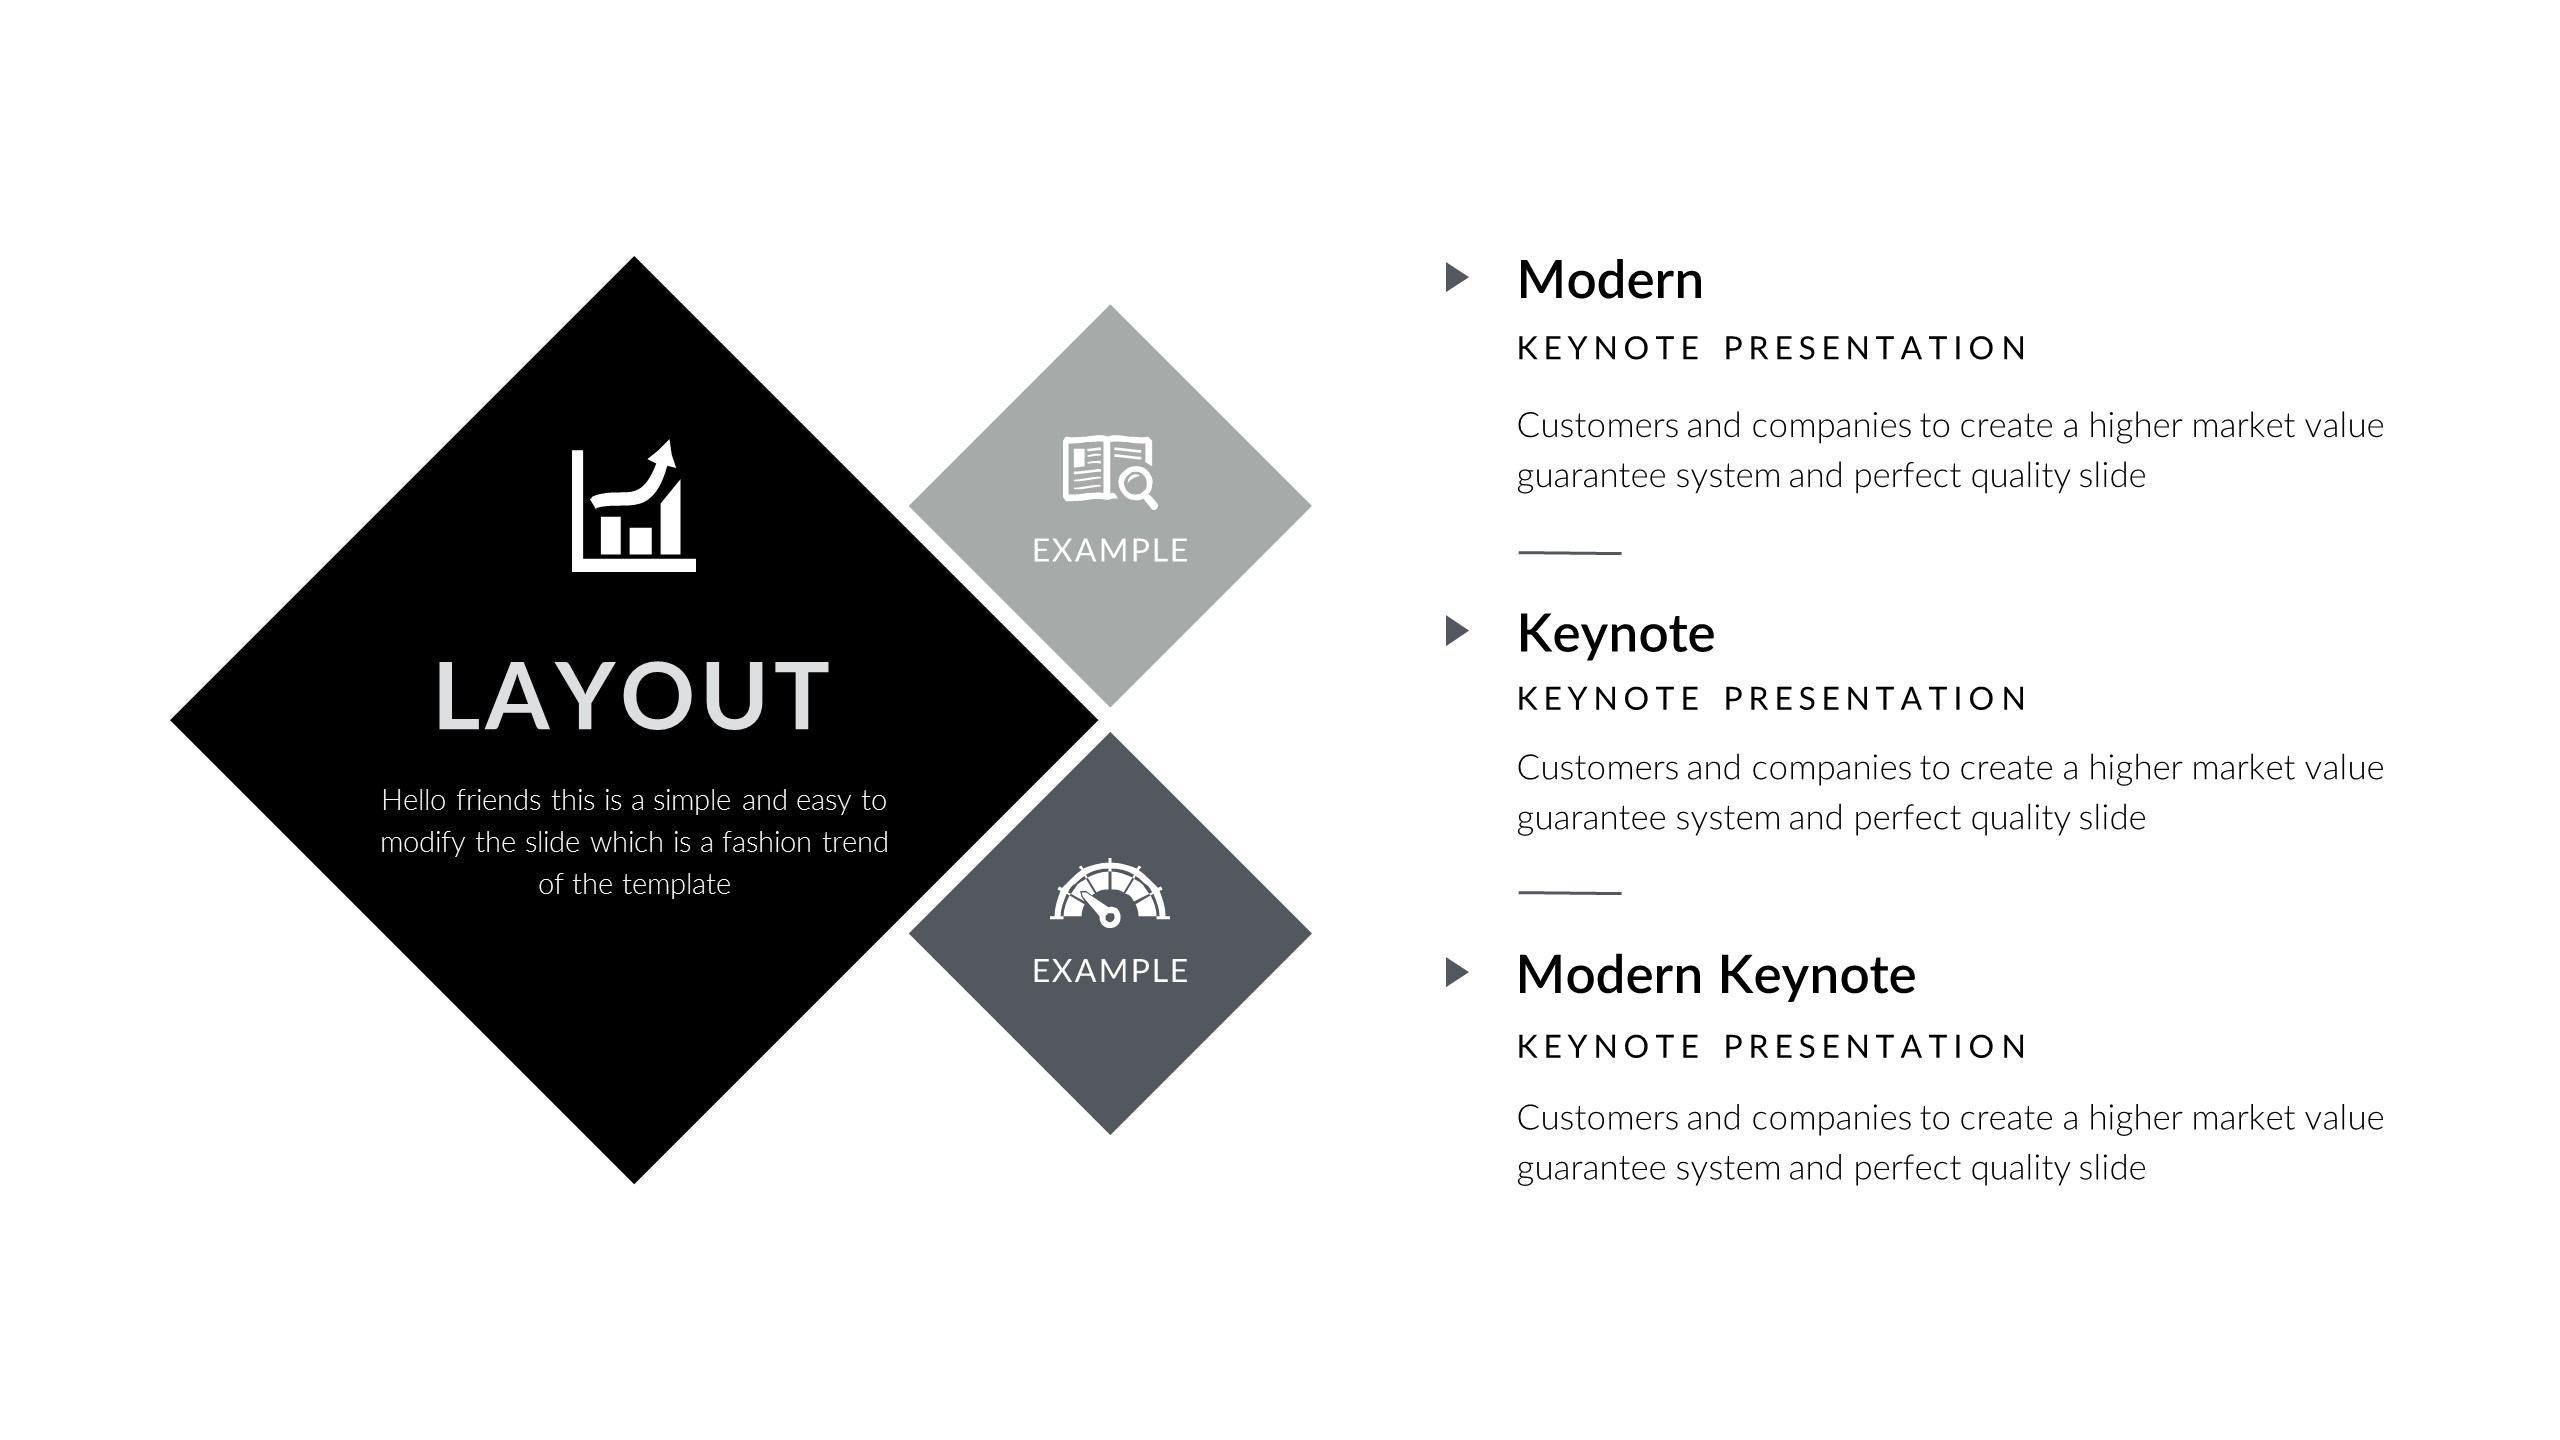 Modern powerpoint template by 5yue graphicriver jpg 009modern ppt p009ppt 50 toneelgroepblik Choice Image